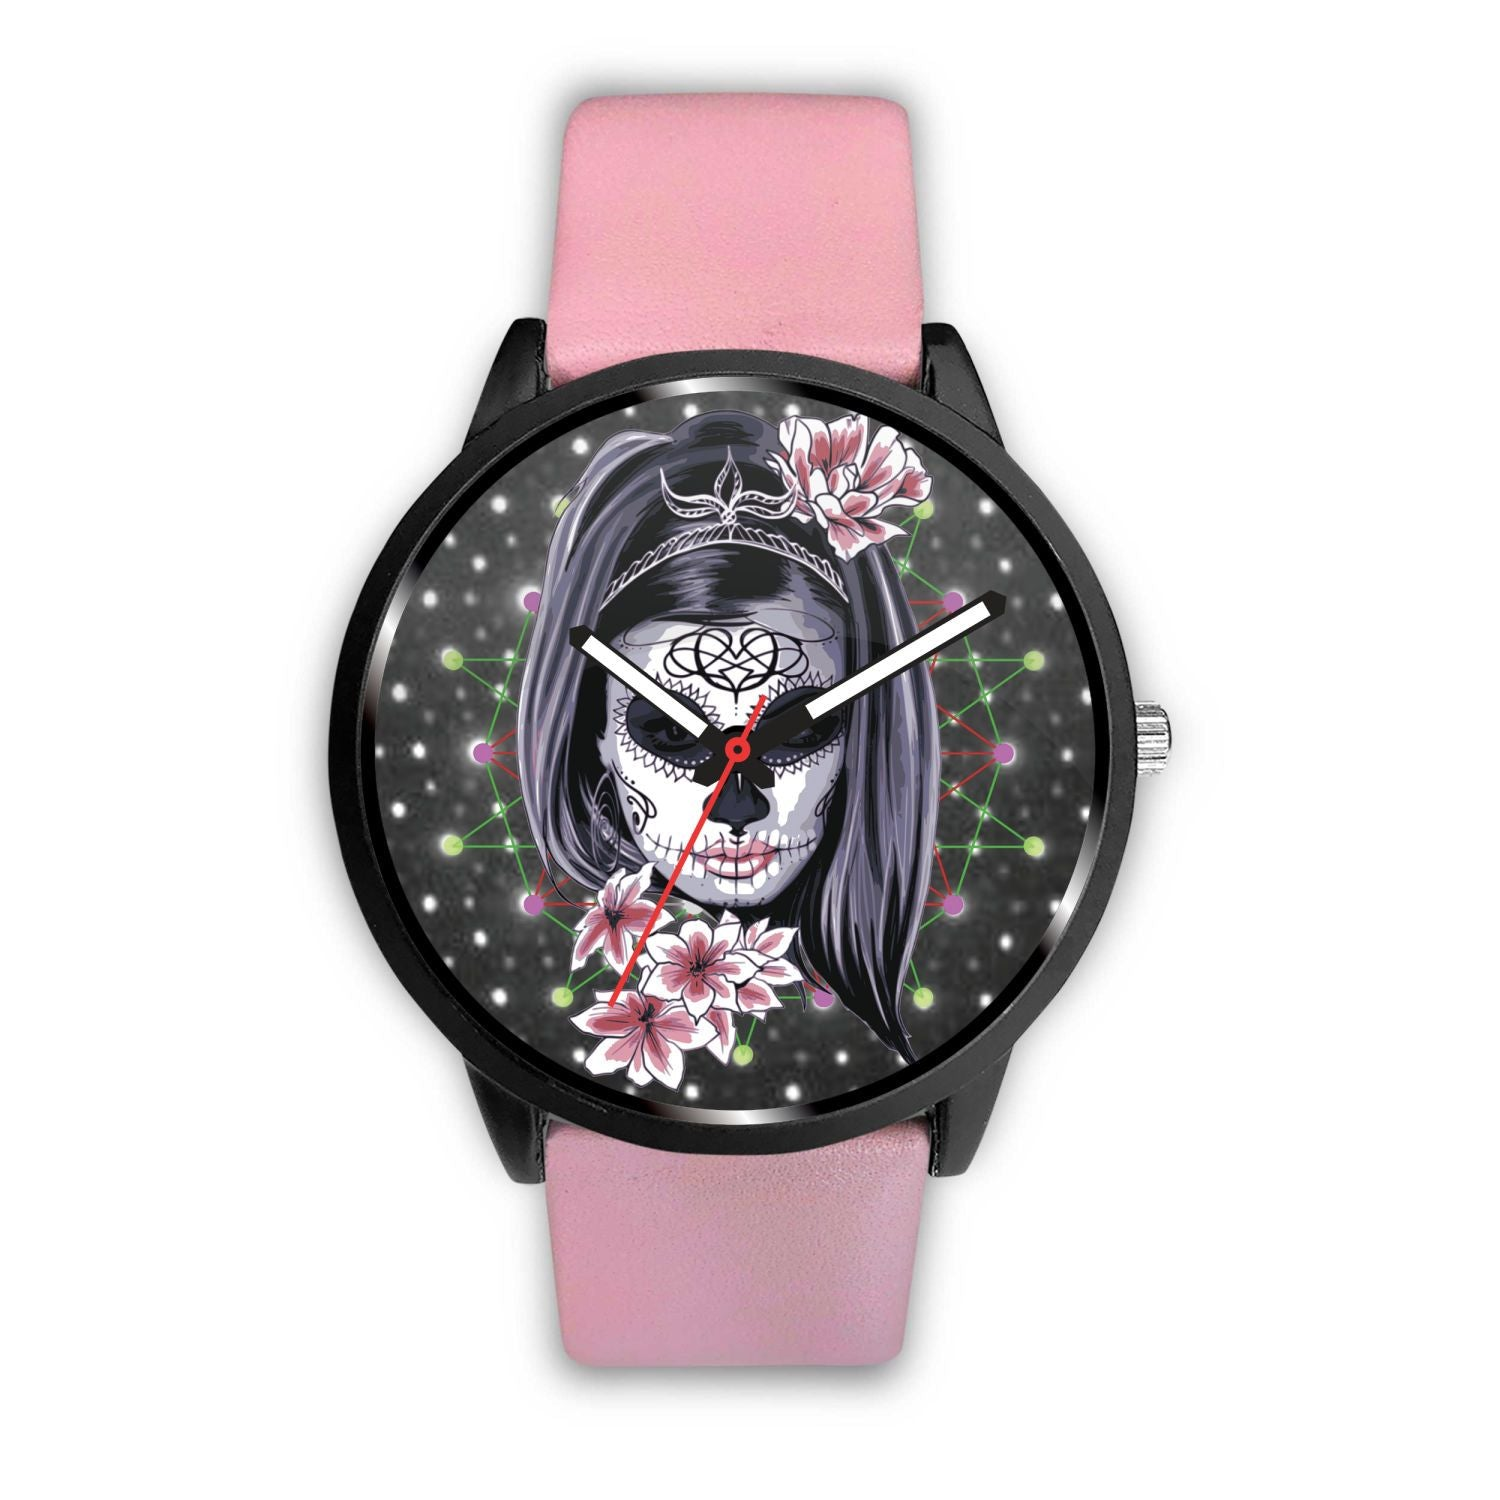 La Catrina Watch-Watch-wc-fulfillment-Mens 40mm-Pink-SKULLZOPHRENIA